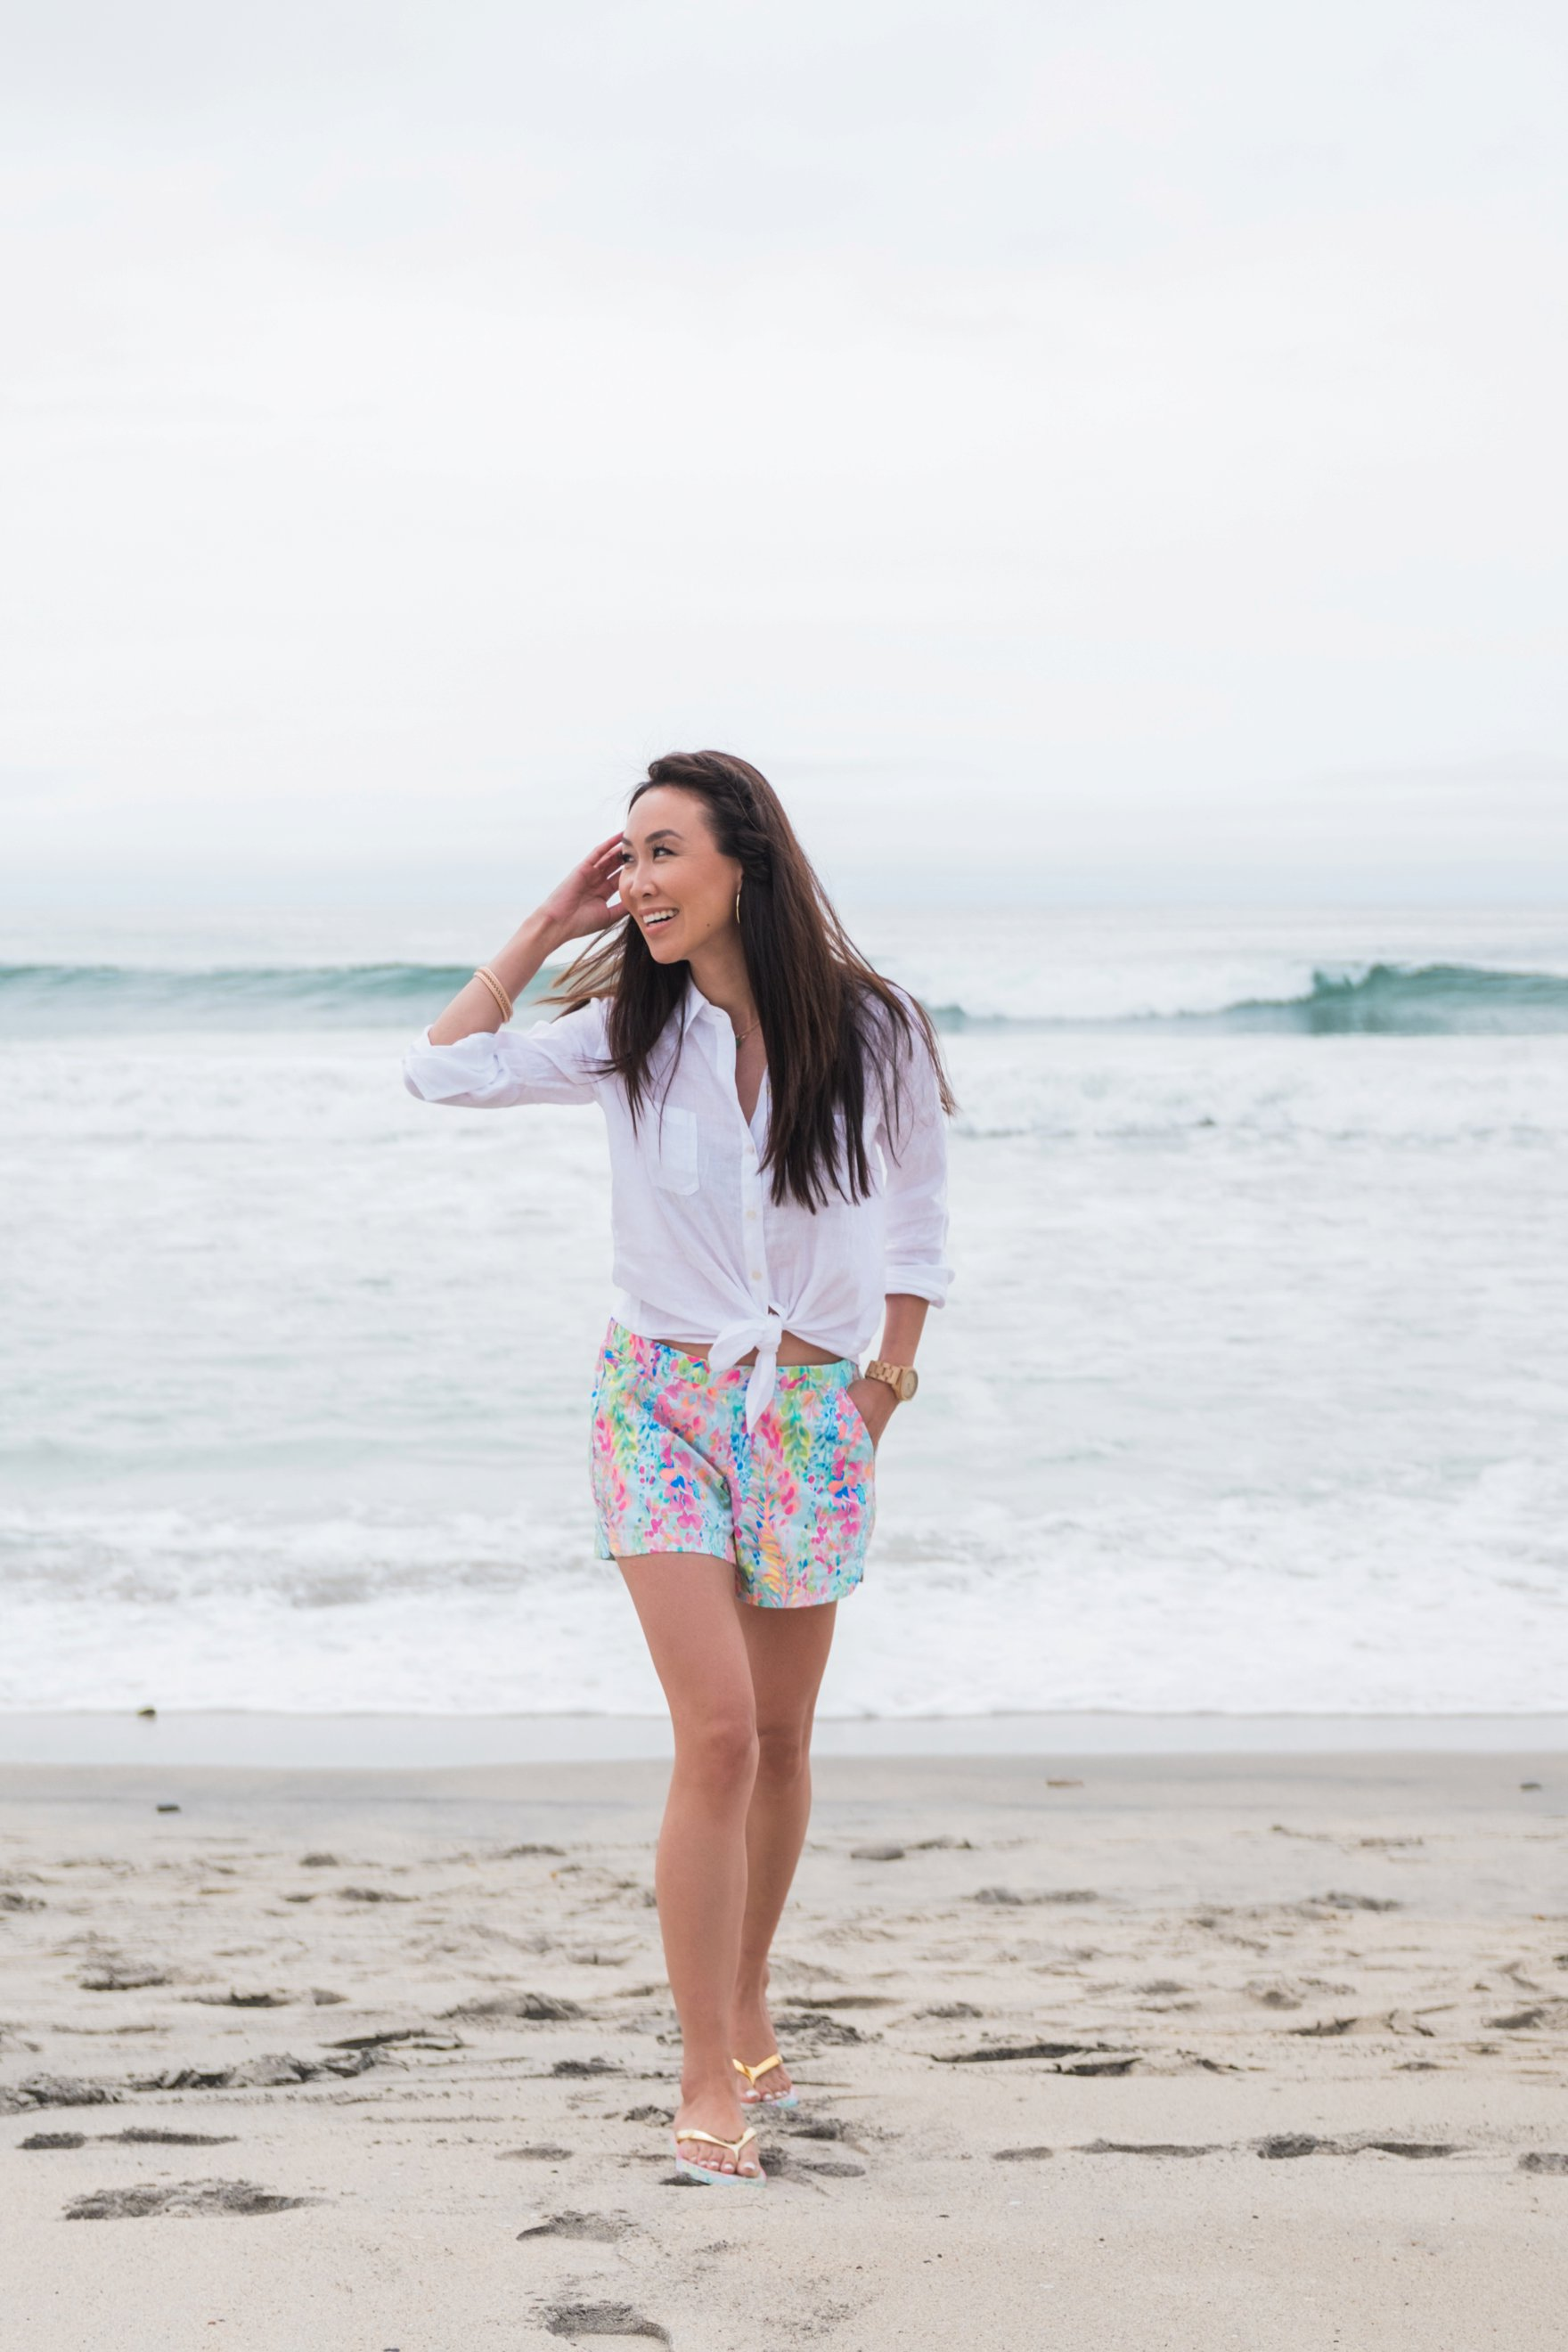 Carlsbad state beach wearing Lilly Pulitzer ocean view boardshort Diana Elizabeth blogger walking on beach wearing linen button up shirt